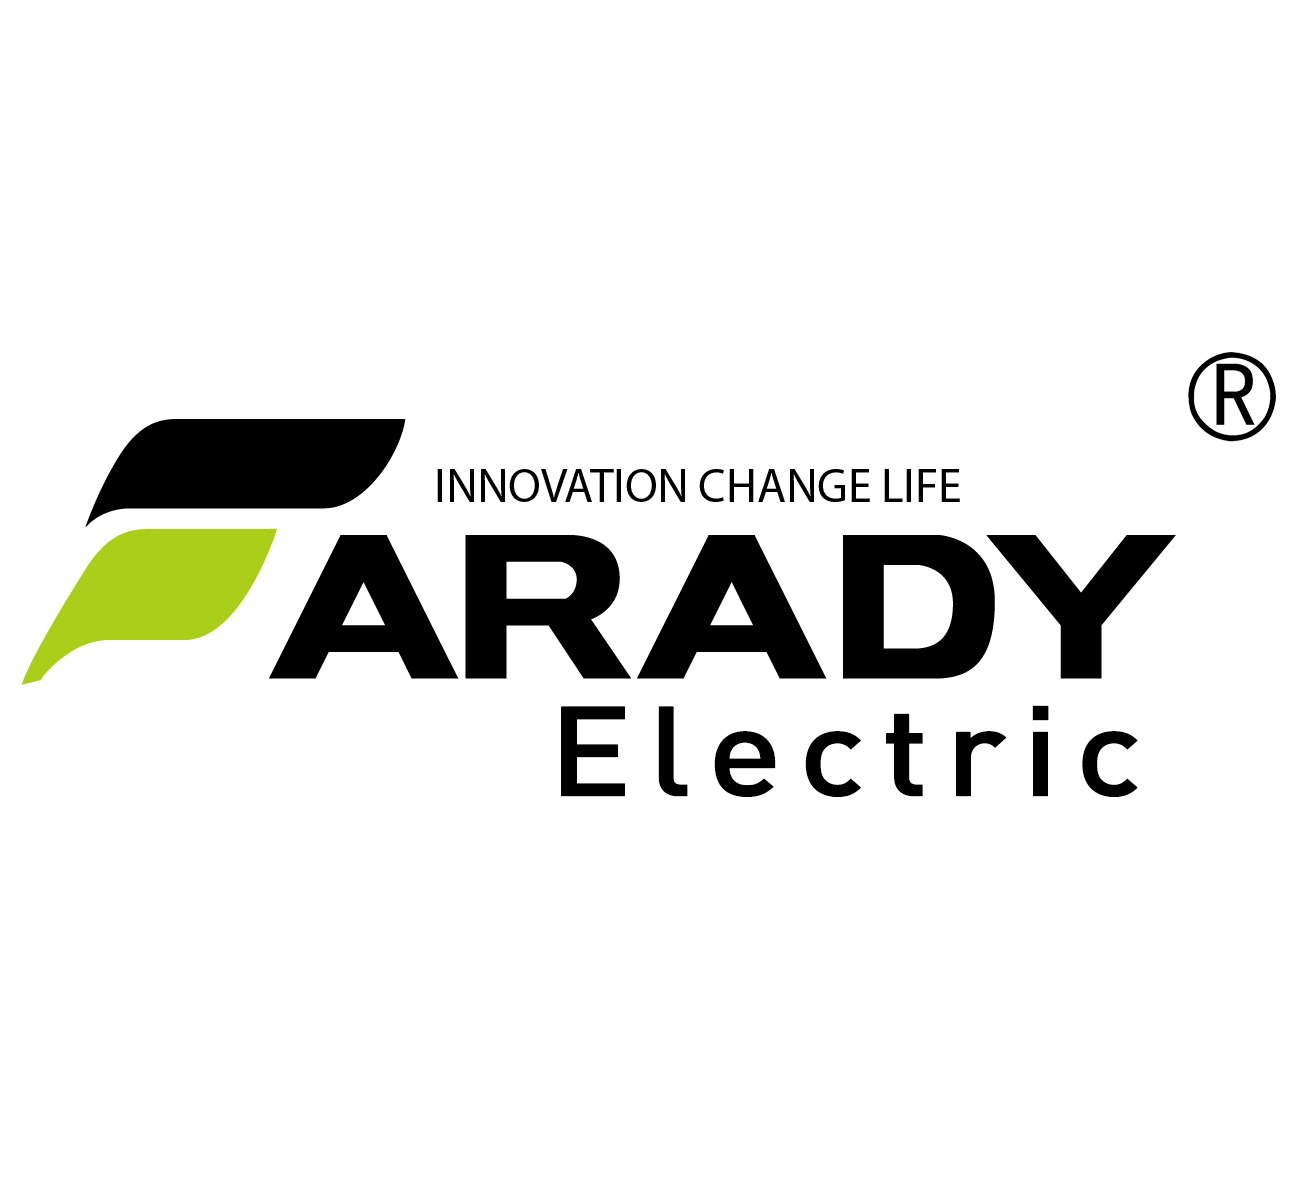 Farady Electric Co., Ltd.